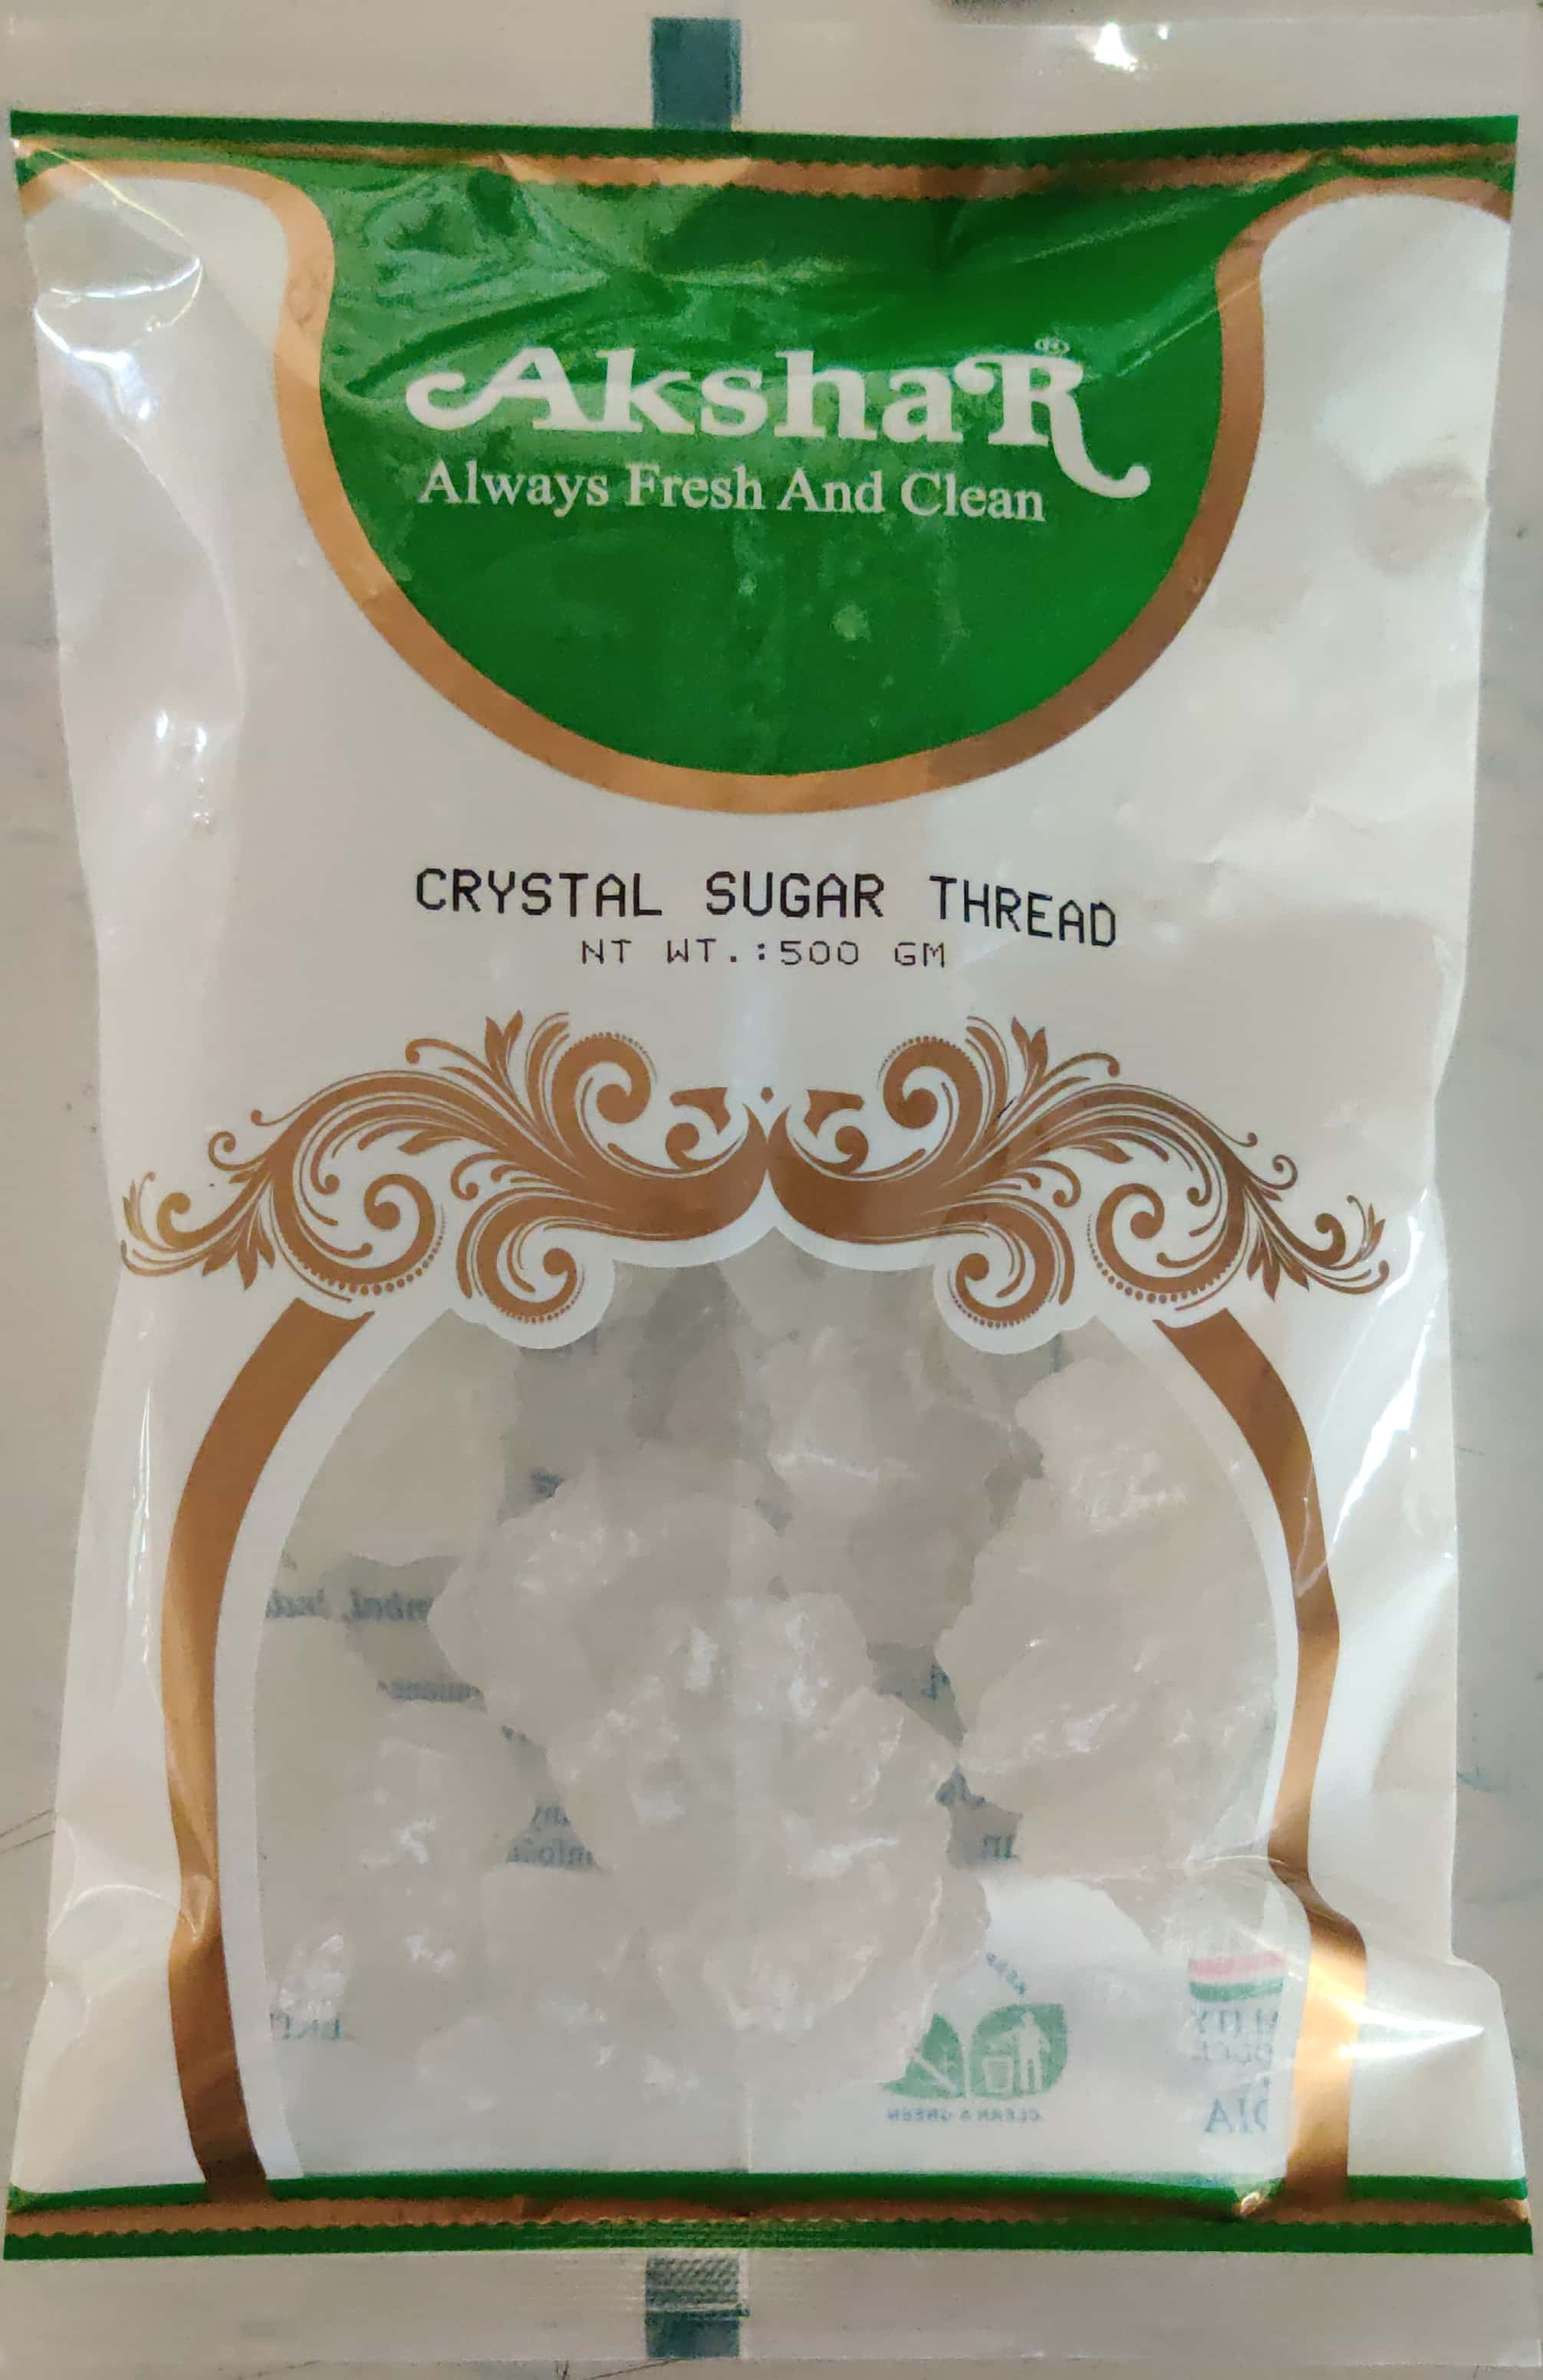 CRYSTAL SUGAR THREAD (MISHRI DHAGA)